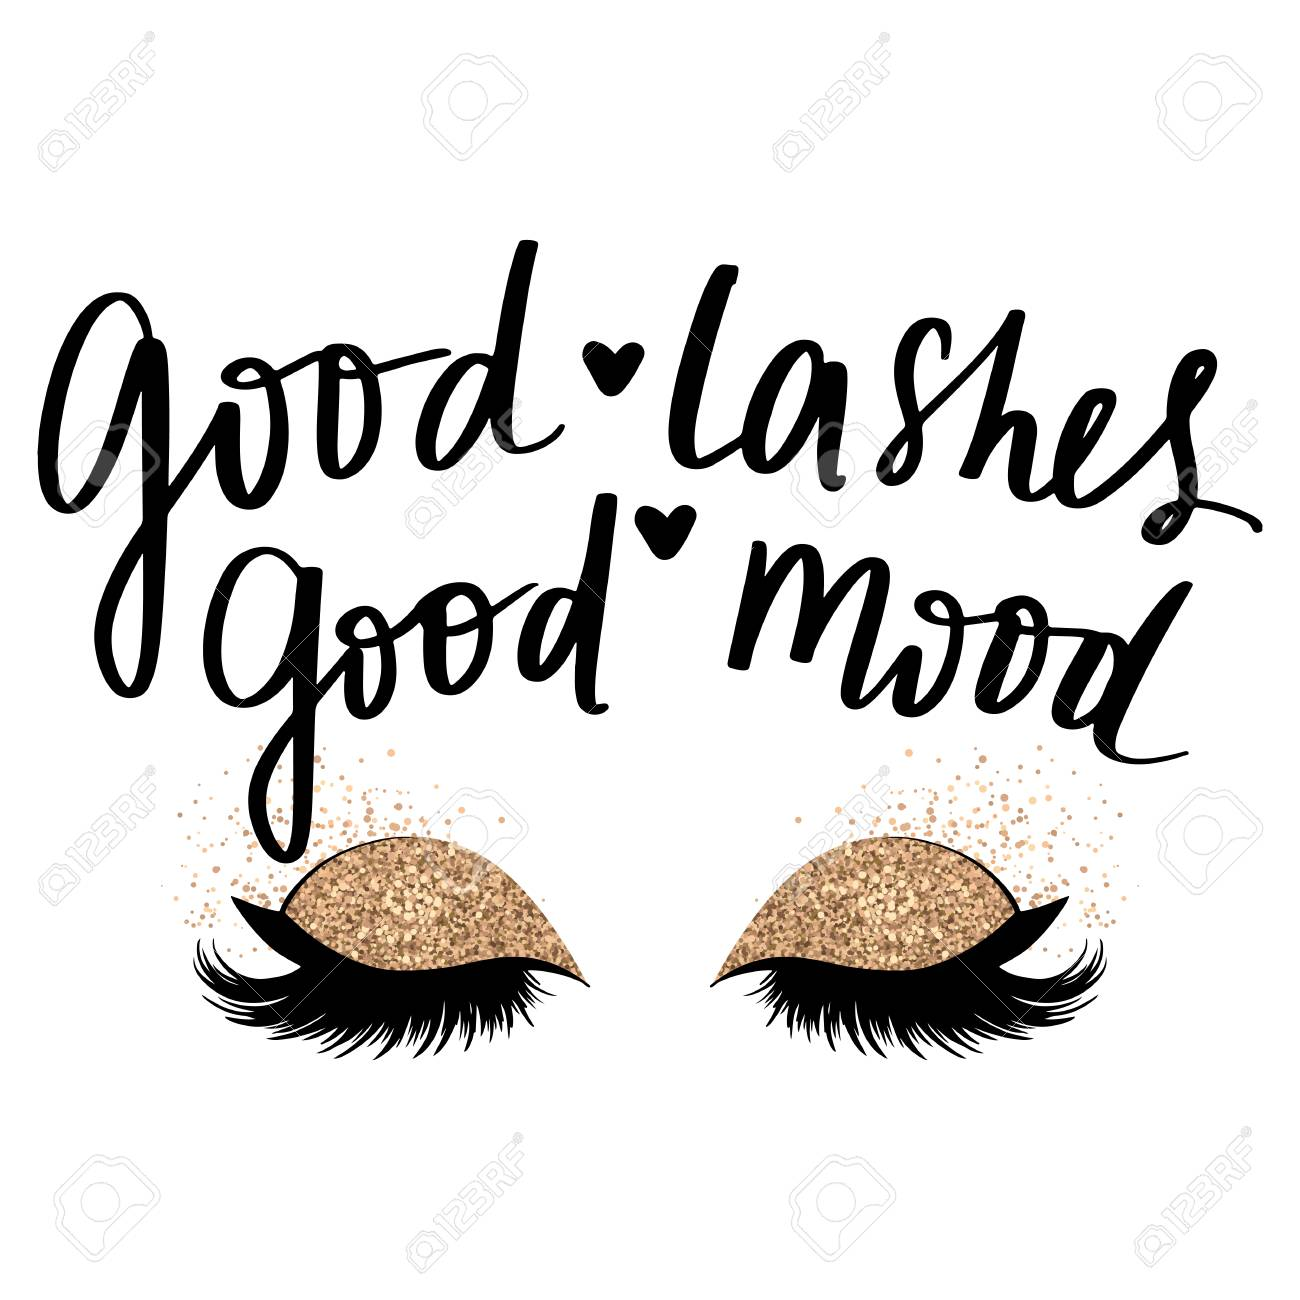 Hand Sketched Lashes Quote Calligraphy Phrase For Beauty Salon Royalty Free Cliparts Vectors And Stock Illustration Image 121856921